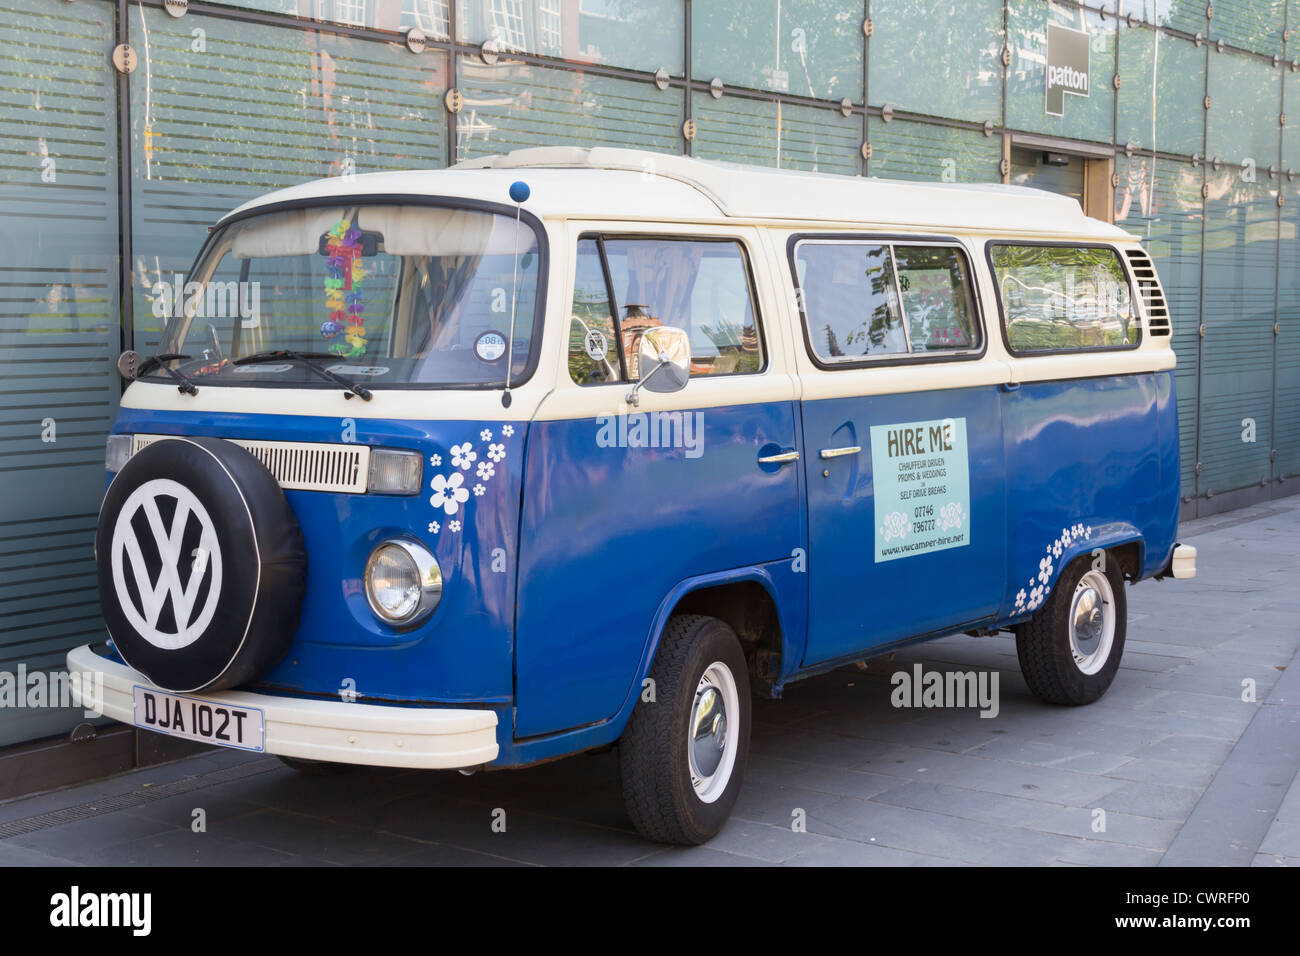 Blue classic car Volkswagen camper van available for hire, parked in central Manchester. - Stock Image